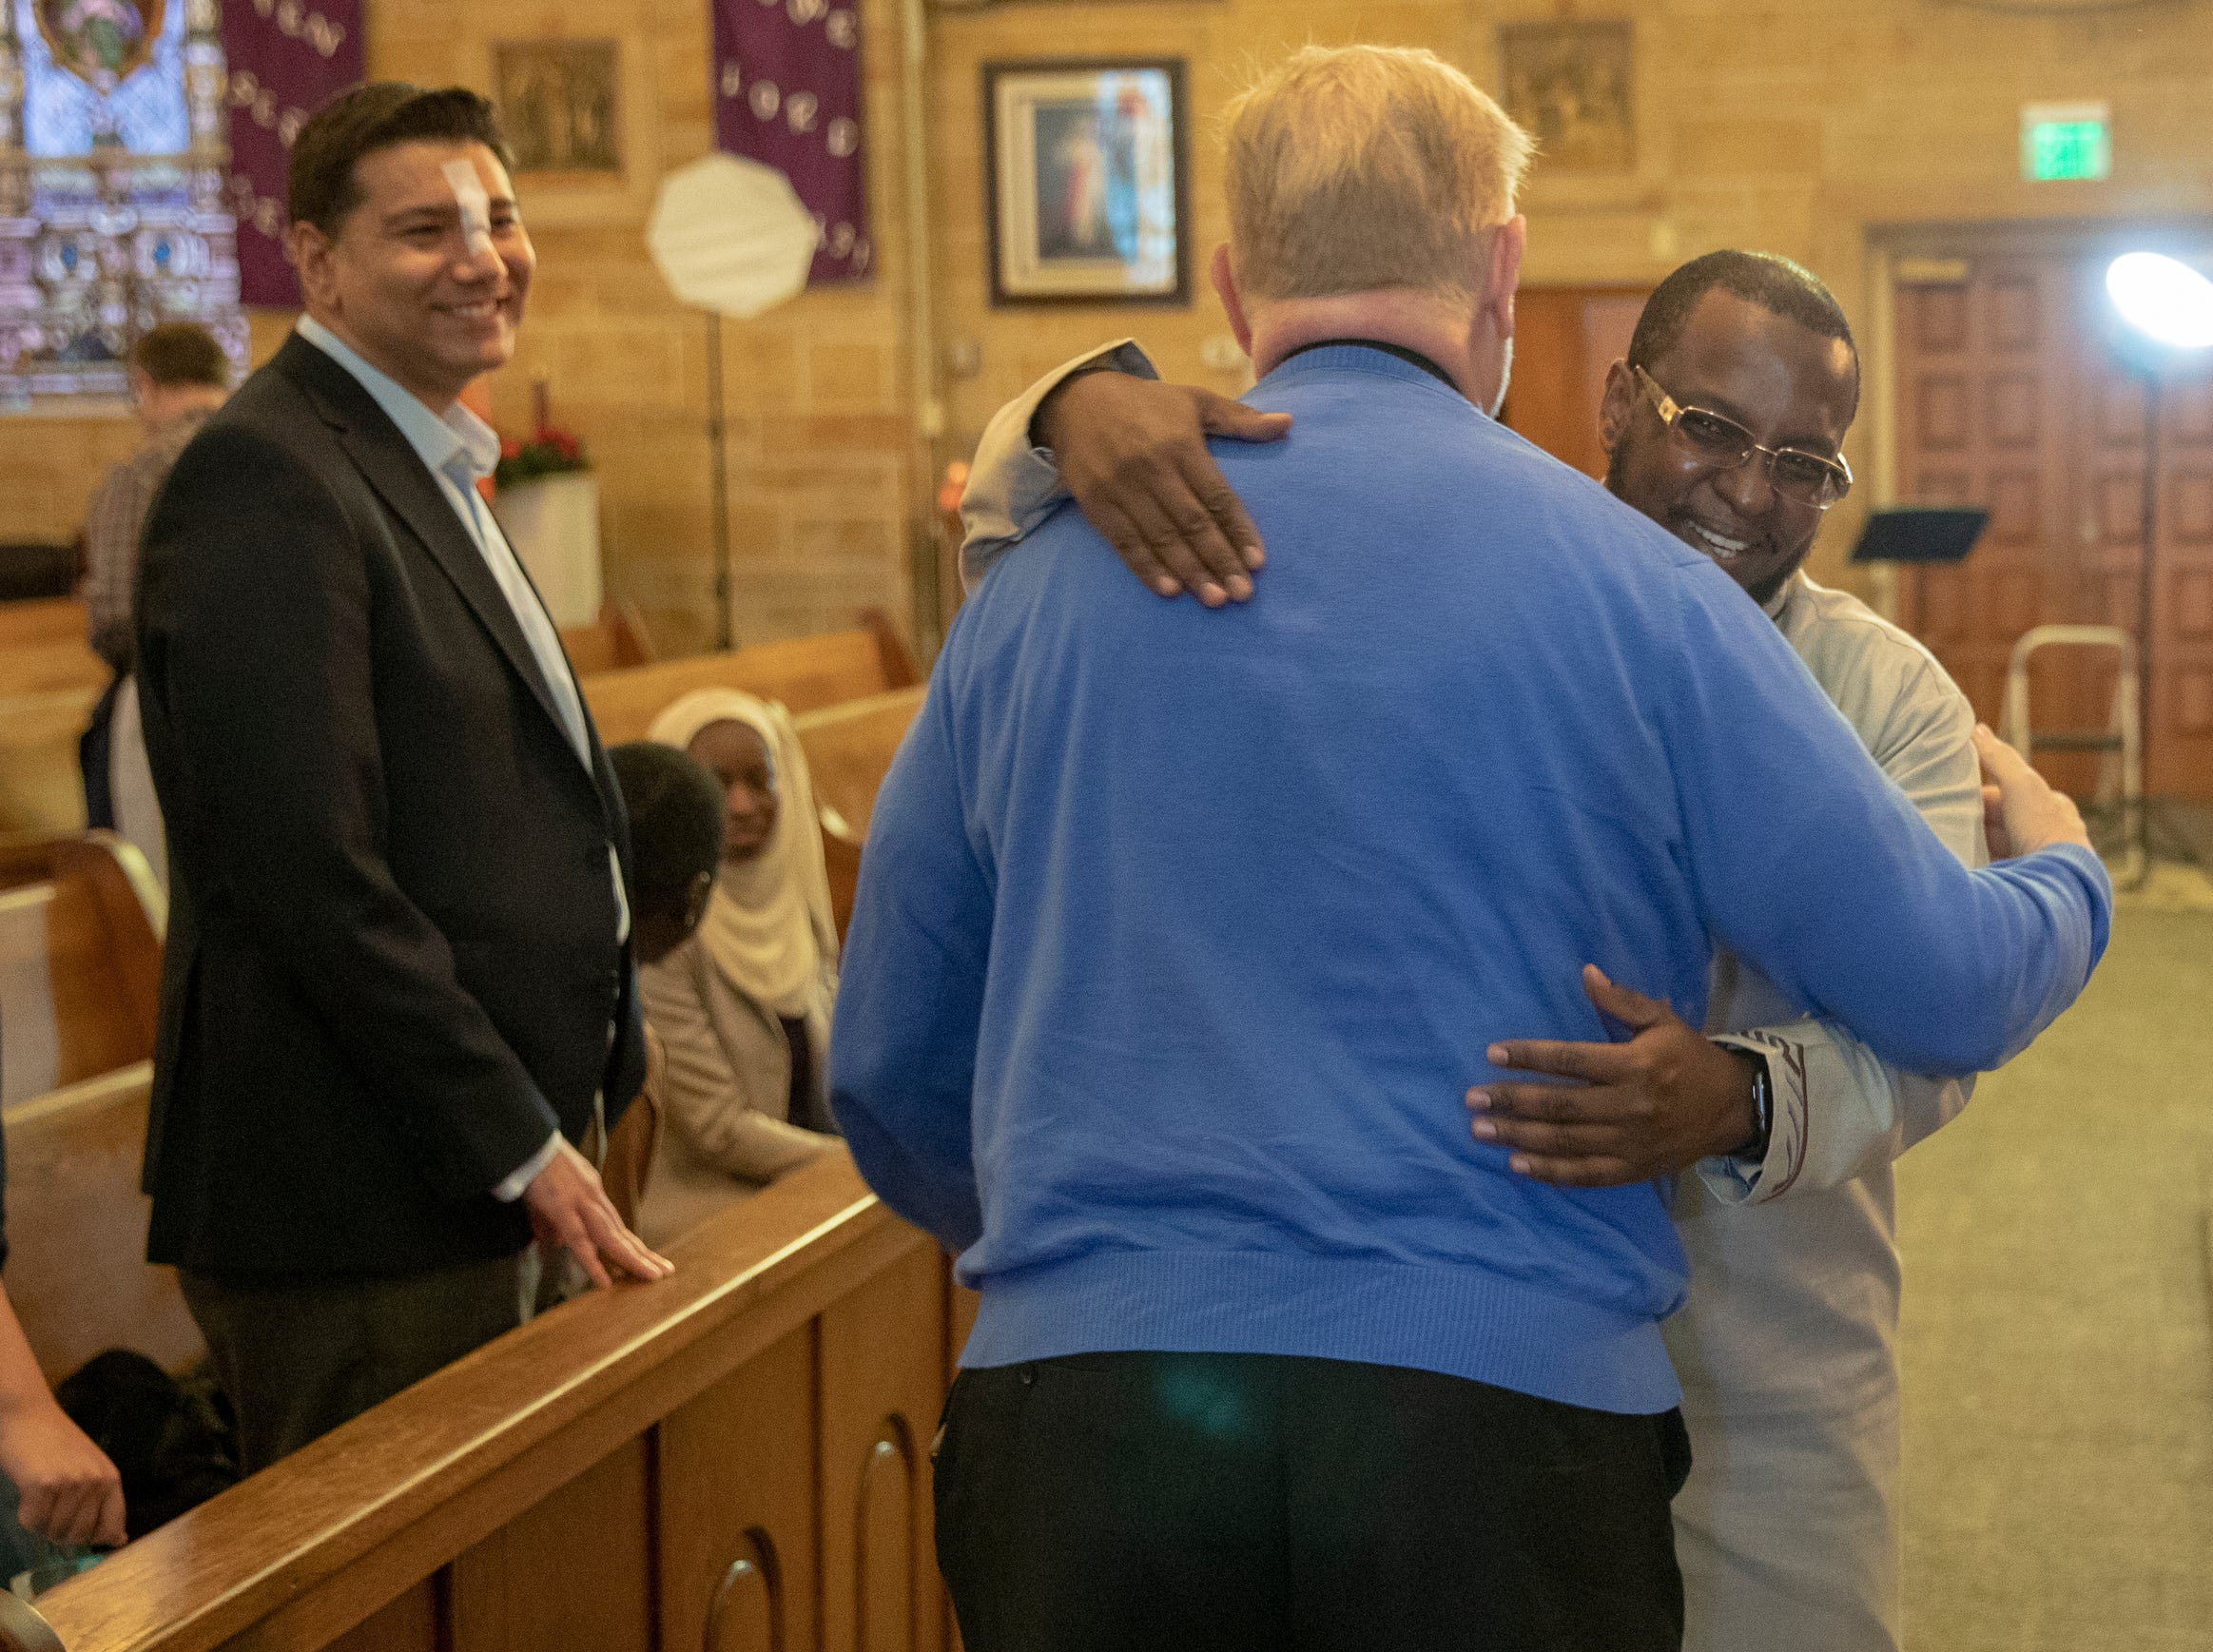 Eyas Raddad (left), watches as fellow Muslim Imam Ahmed Al-Amine (right), embraces Fr. Rick Ginther, a member of Our Lady of Lourdes, before a Christian-Muslim prayer service at Saint Philip Neri Catholic Church, Indianapolis, Sunday, Dec. 16, 2018. The service is the second annual, and joins people from this church and Indianapolis' Masjid Al-Fajr.